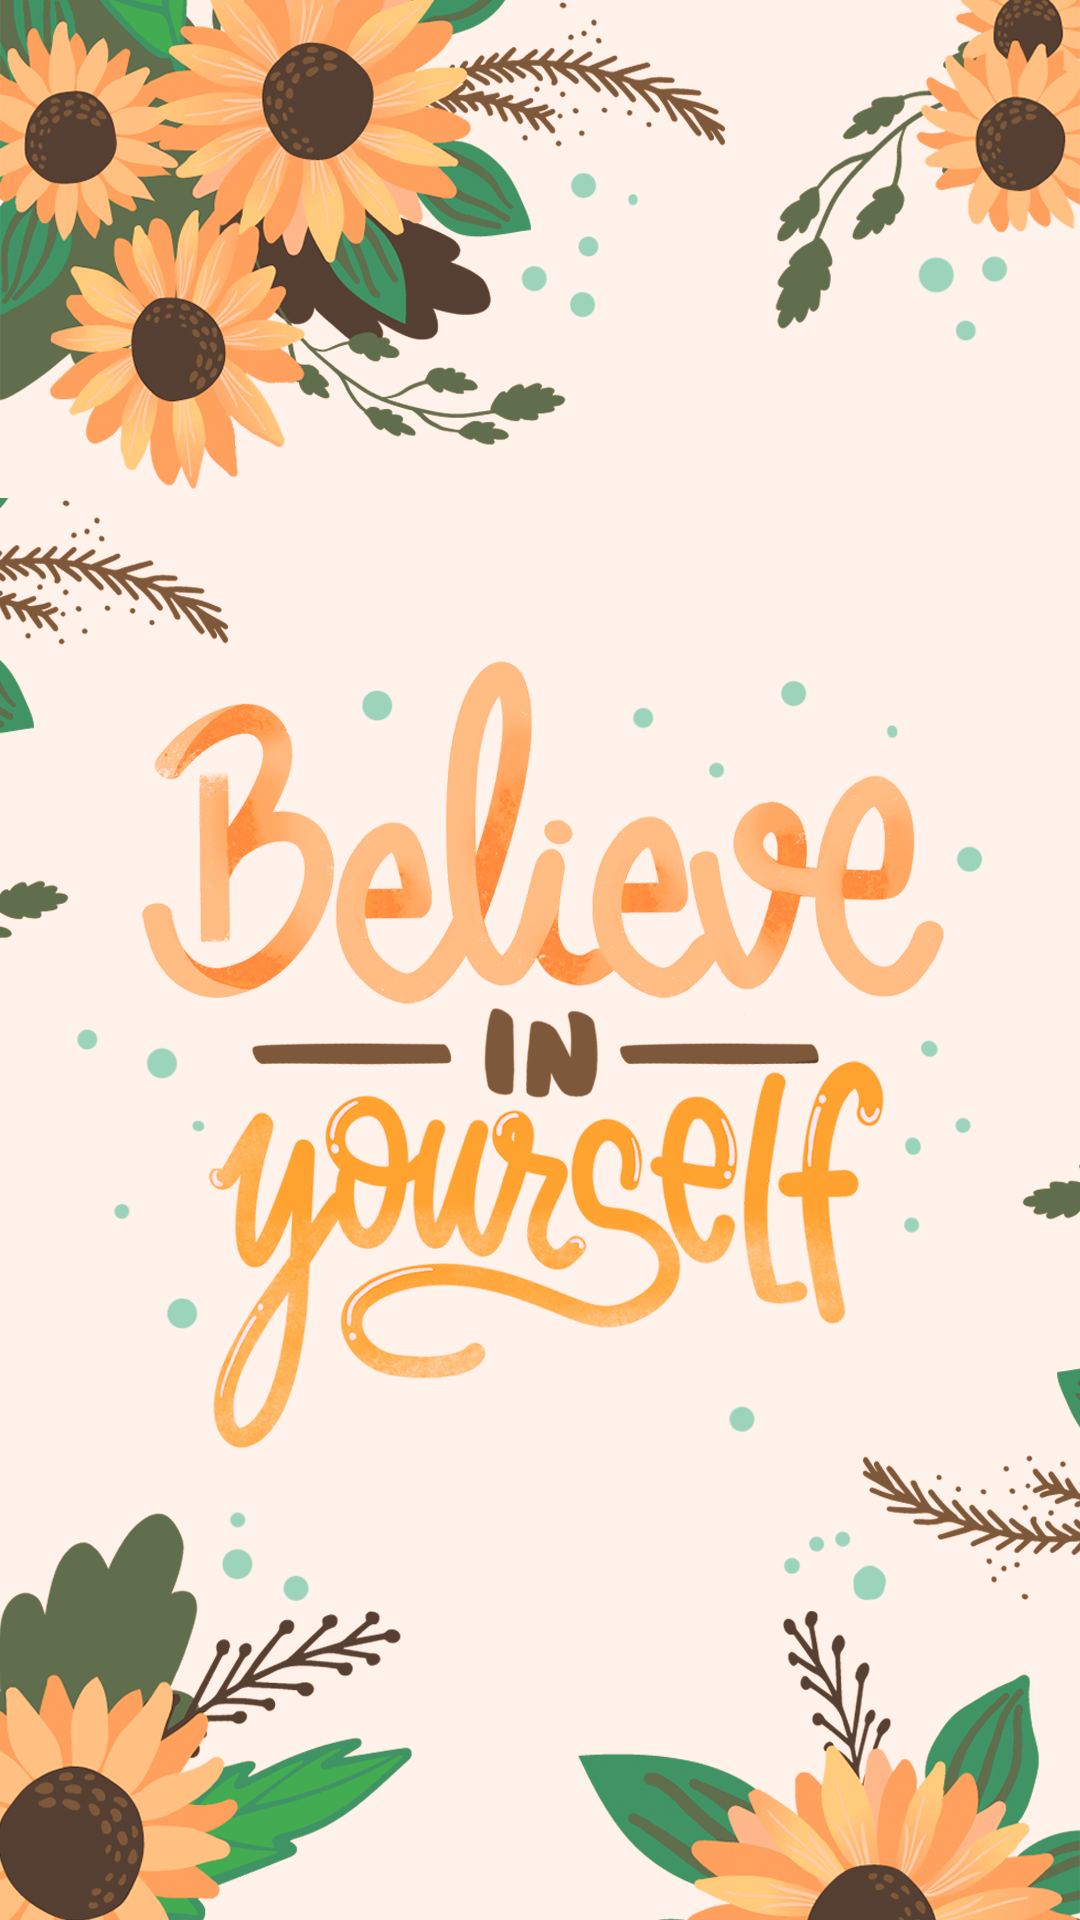 Wallpaper Believe In Yourself by Gocase Wallpaper quotes Cute 1080x1920